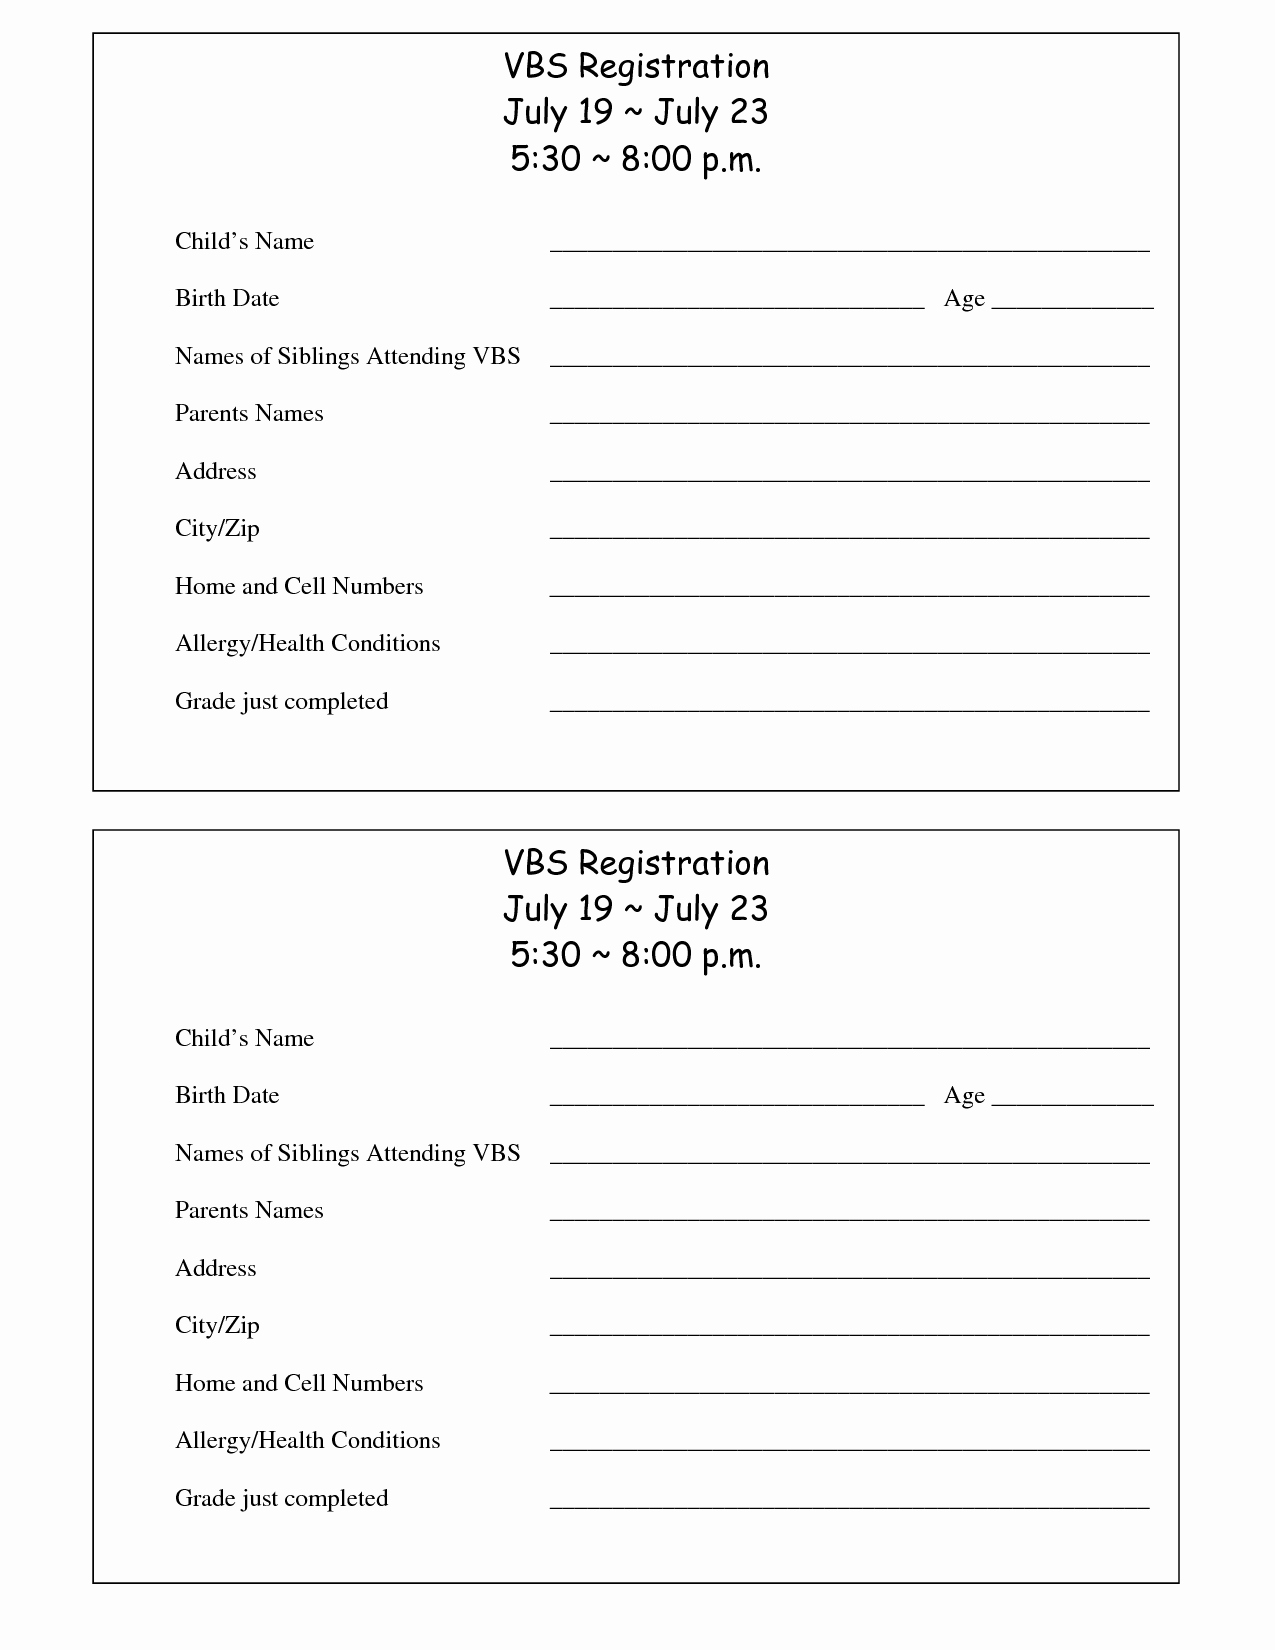 Free Registration forms Template Luxury Printable Vbs Registration form Template